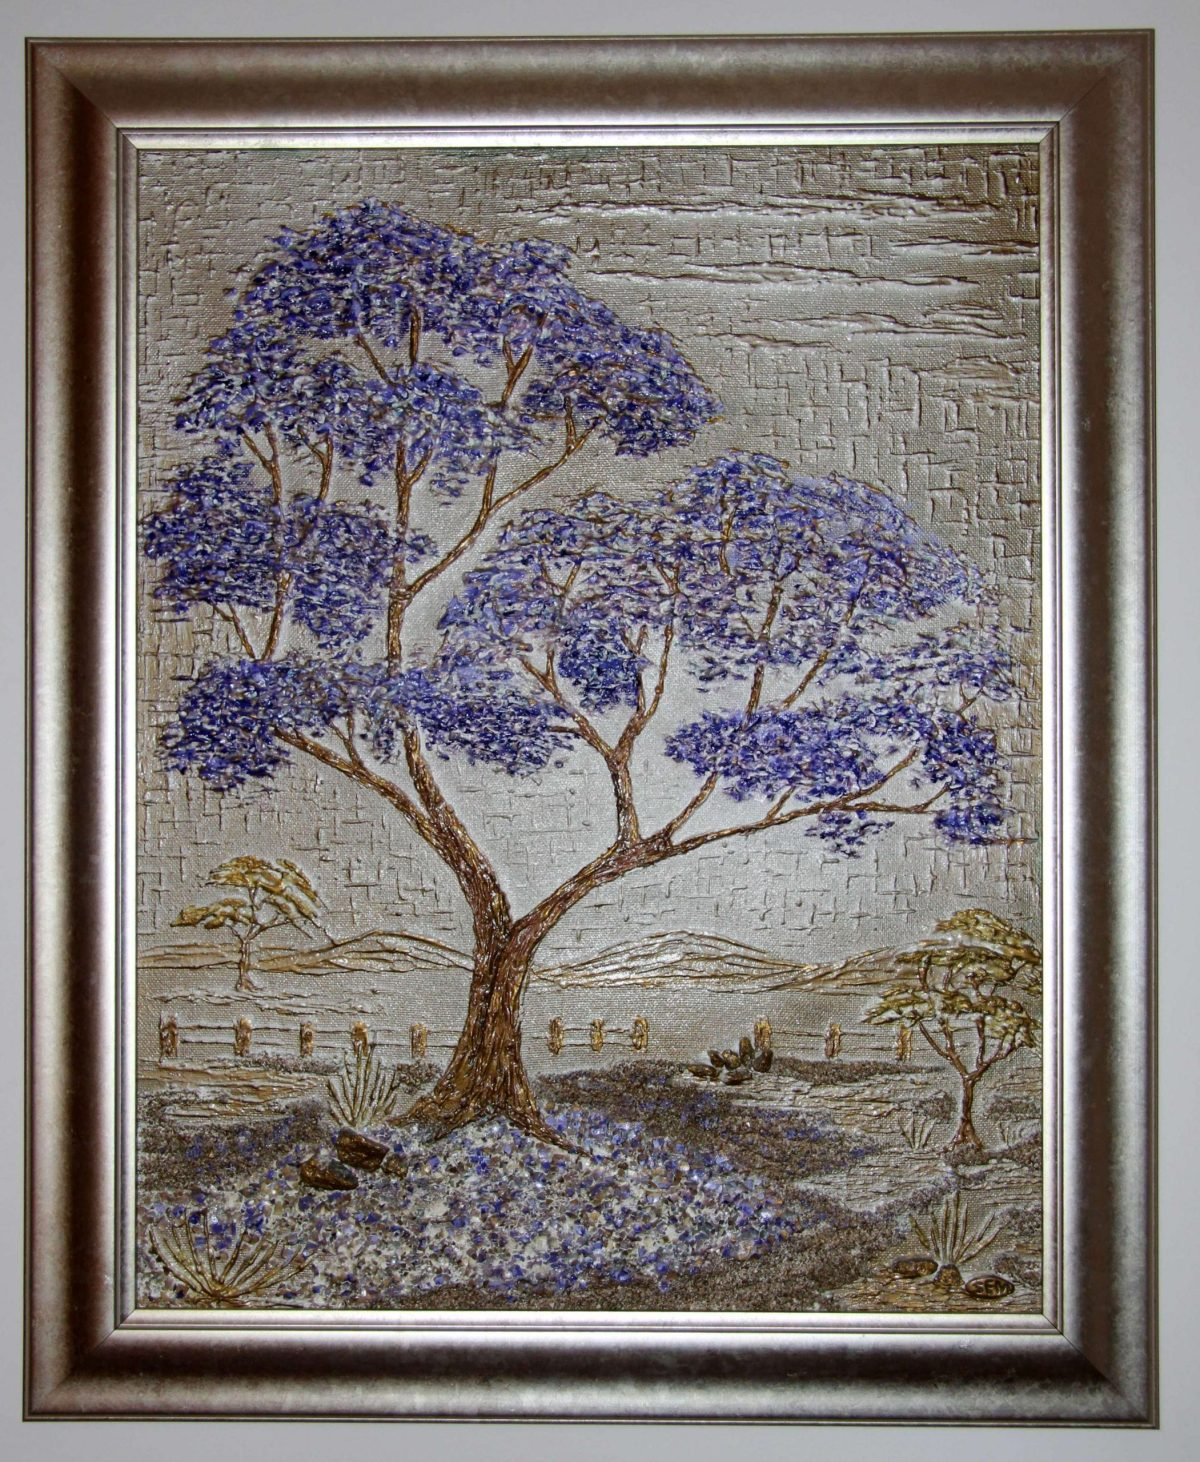 My grandmother's Rhodesian jacaranda